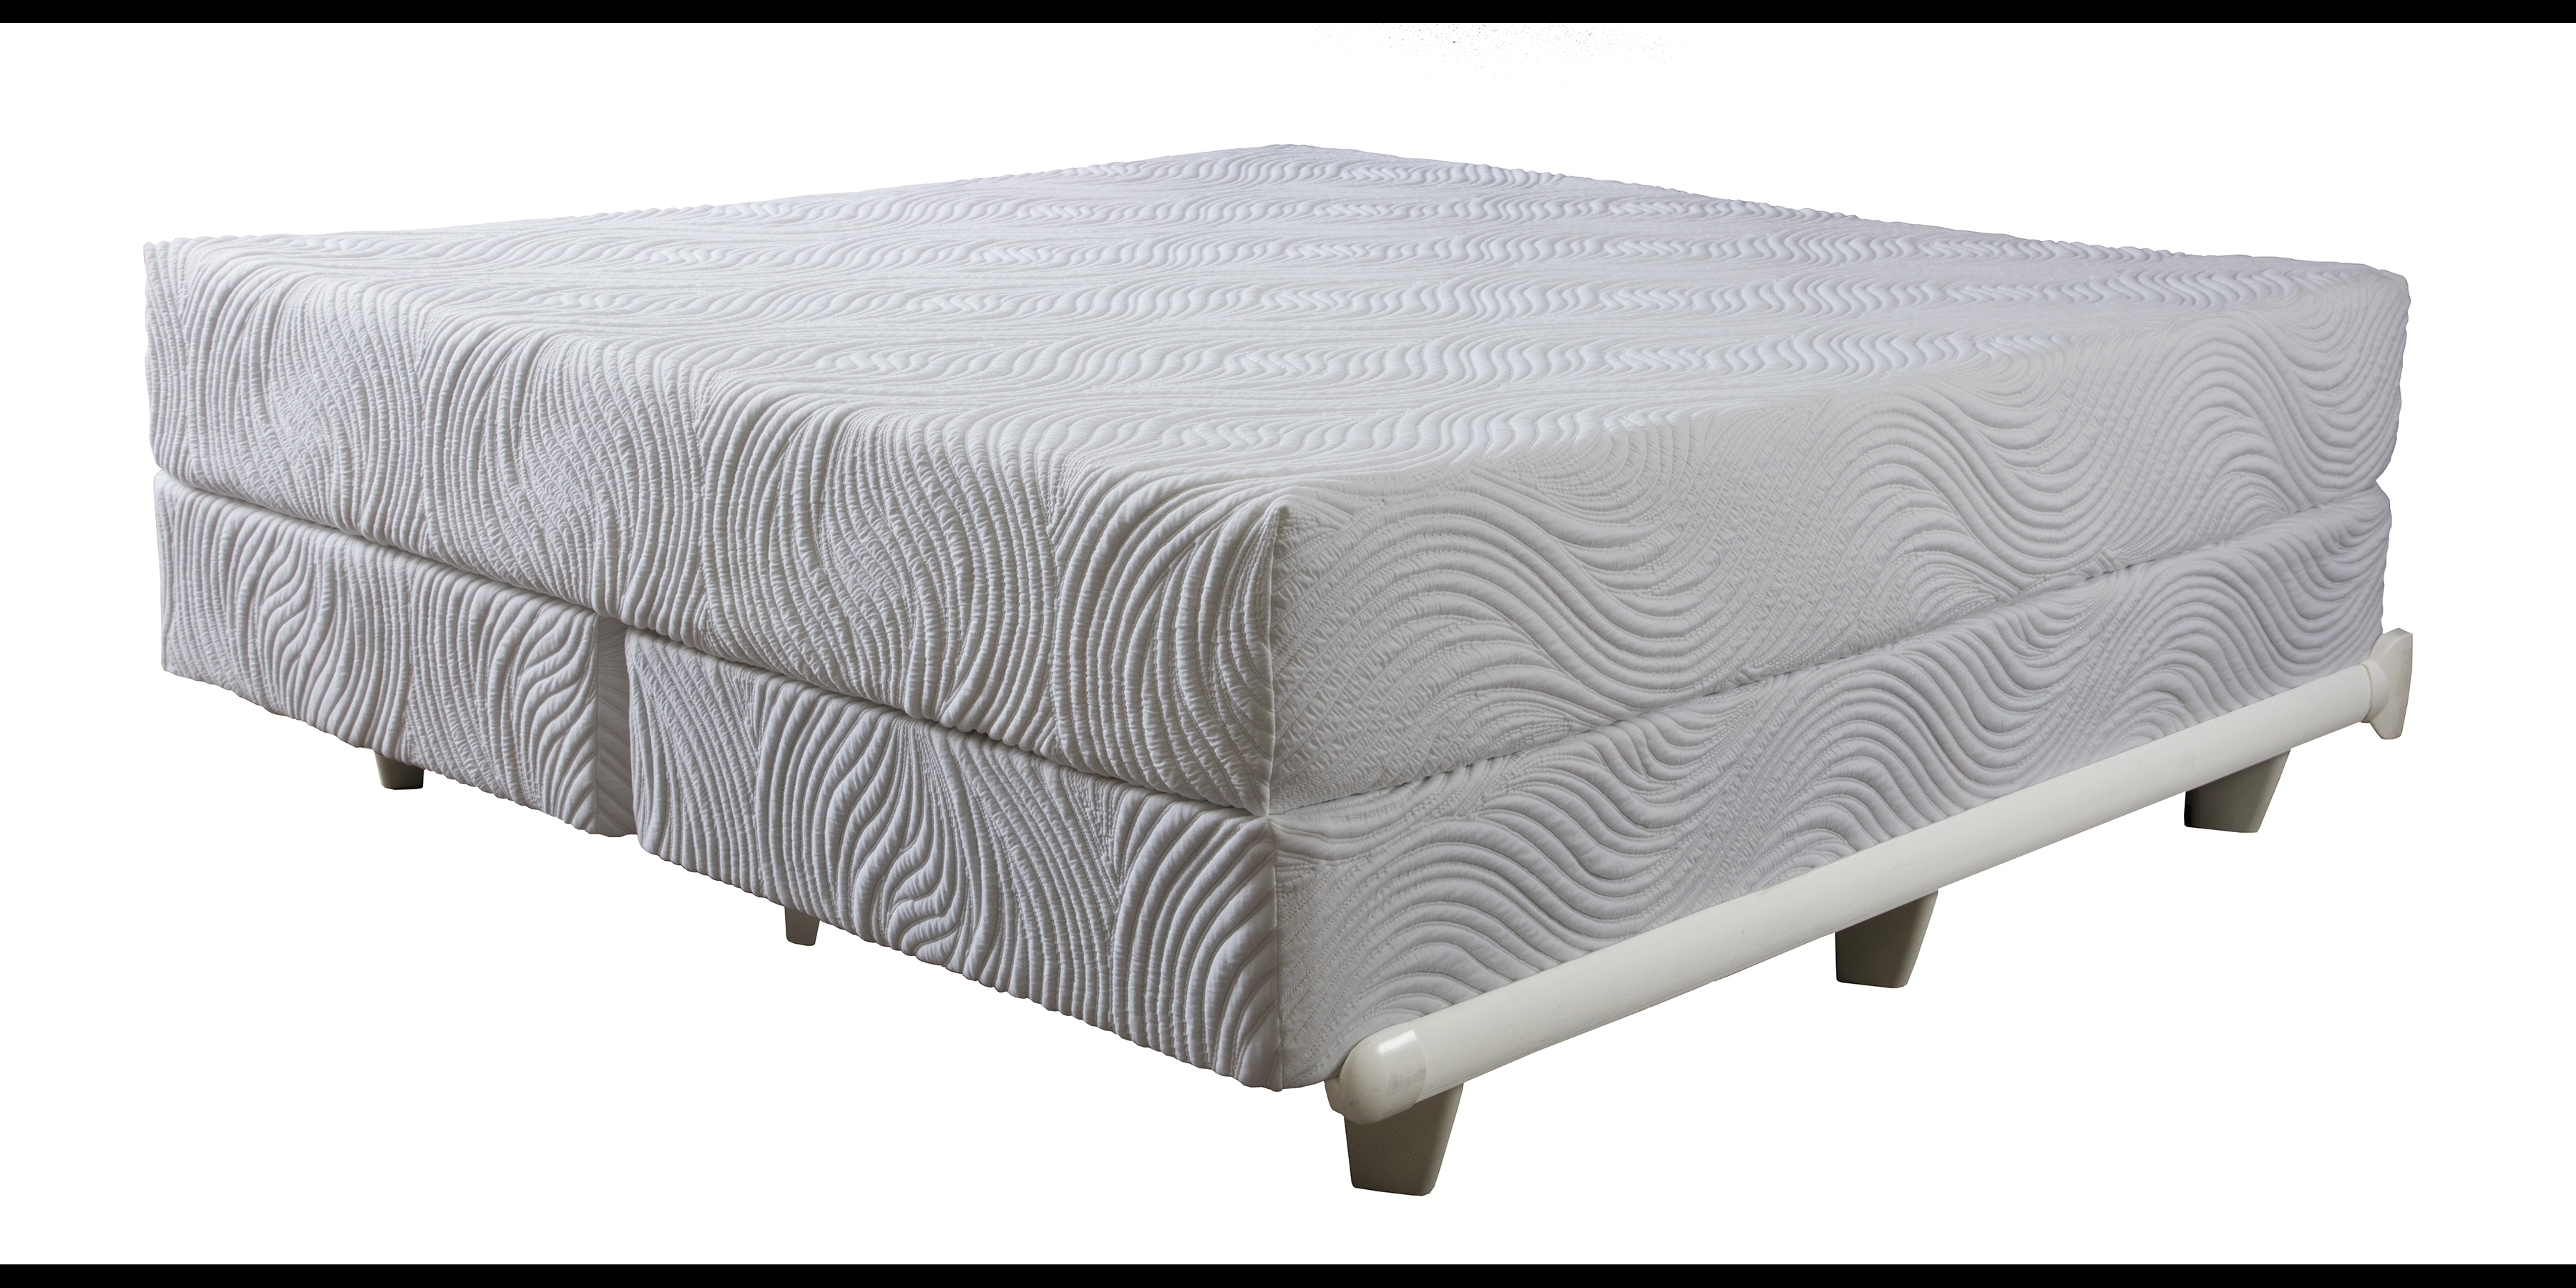 Pure Talalay Bliss Worleybeds